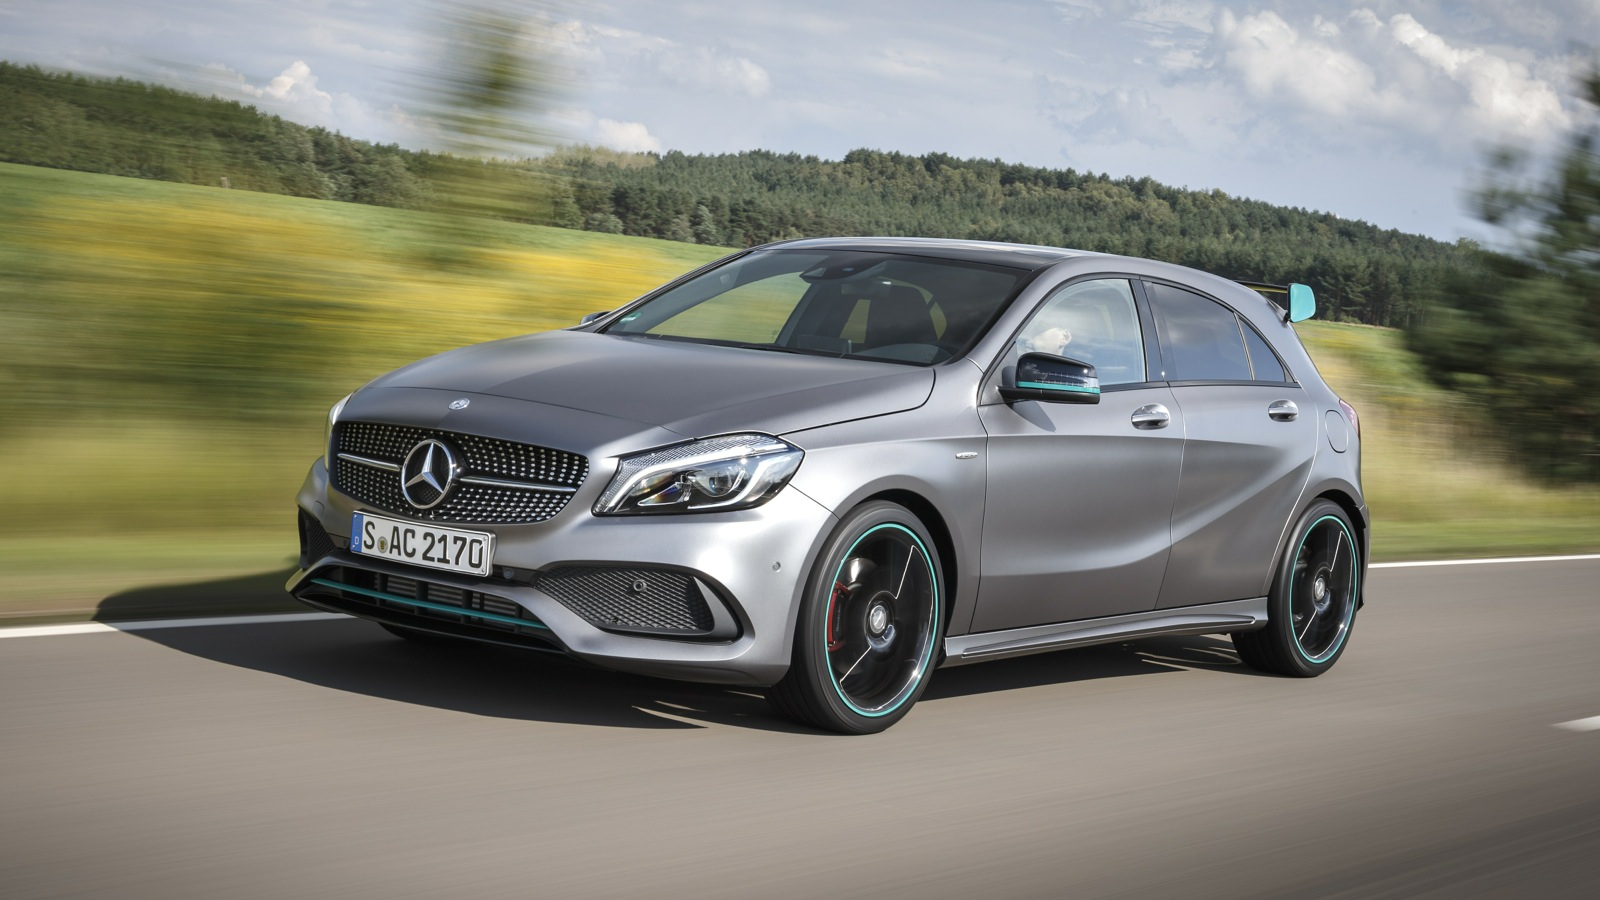 2016 mercedes benz a250 sport 4matic review motorsport for Mercedes benz sports cars